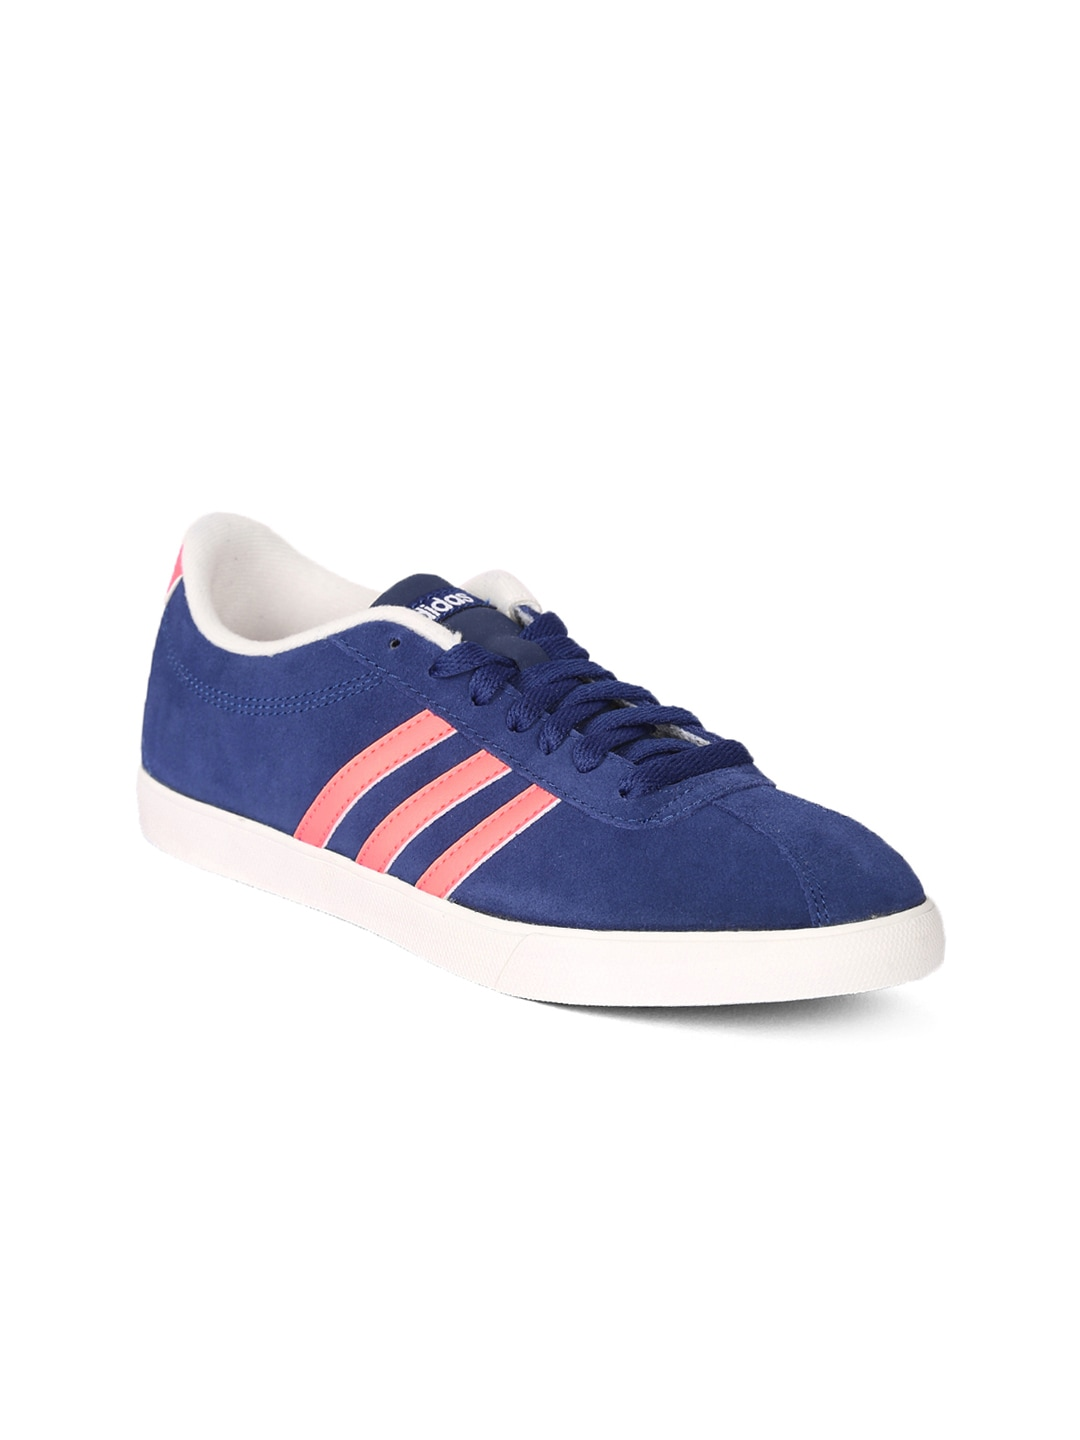 Adidas Casual Shoes Berry Skirts Buy reQdxBoWEC